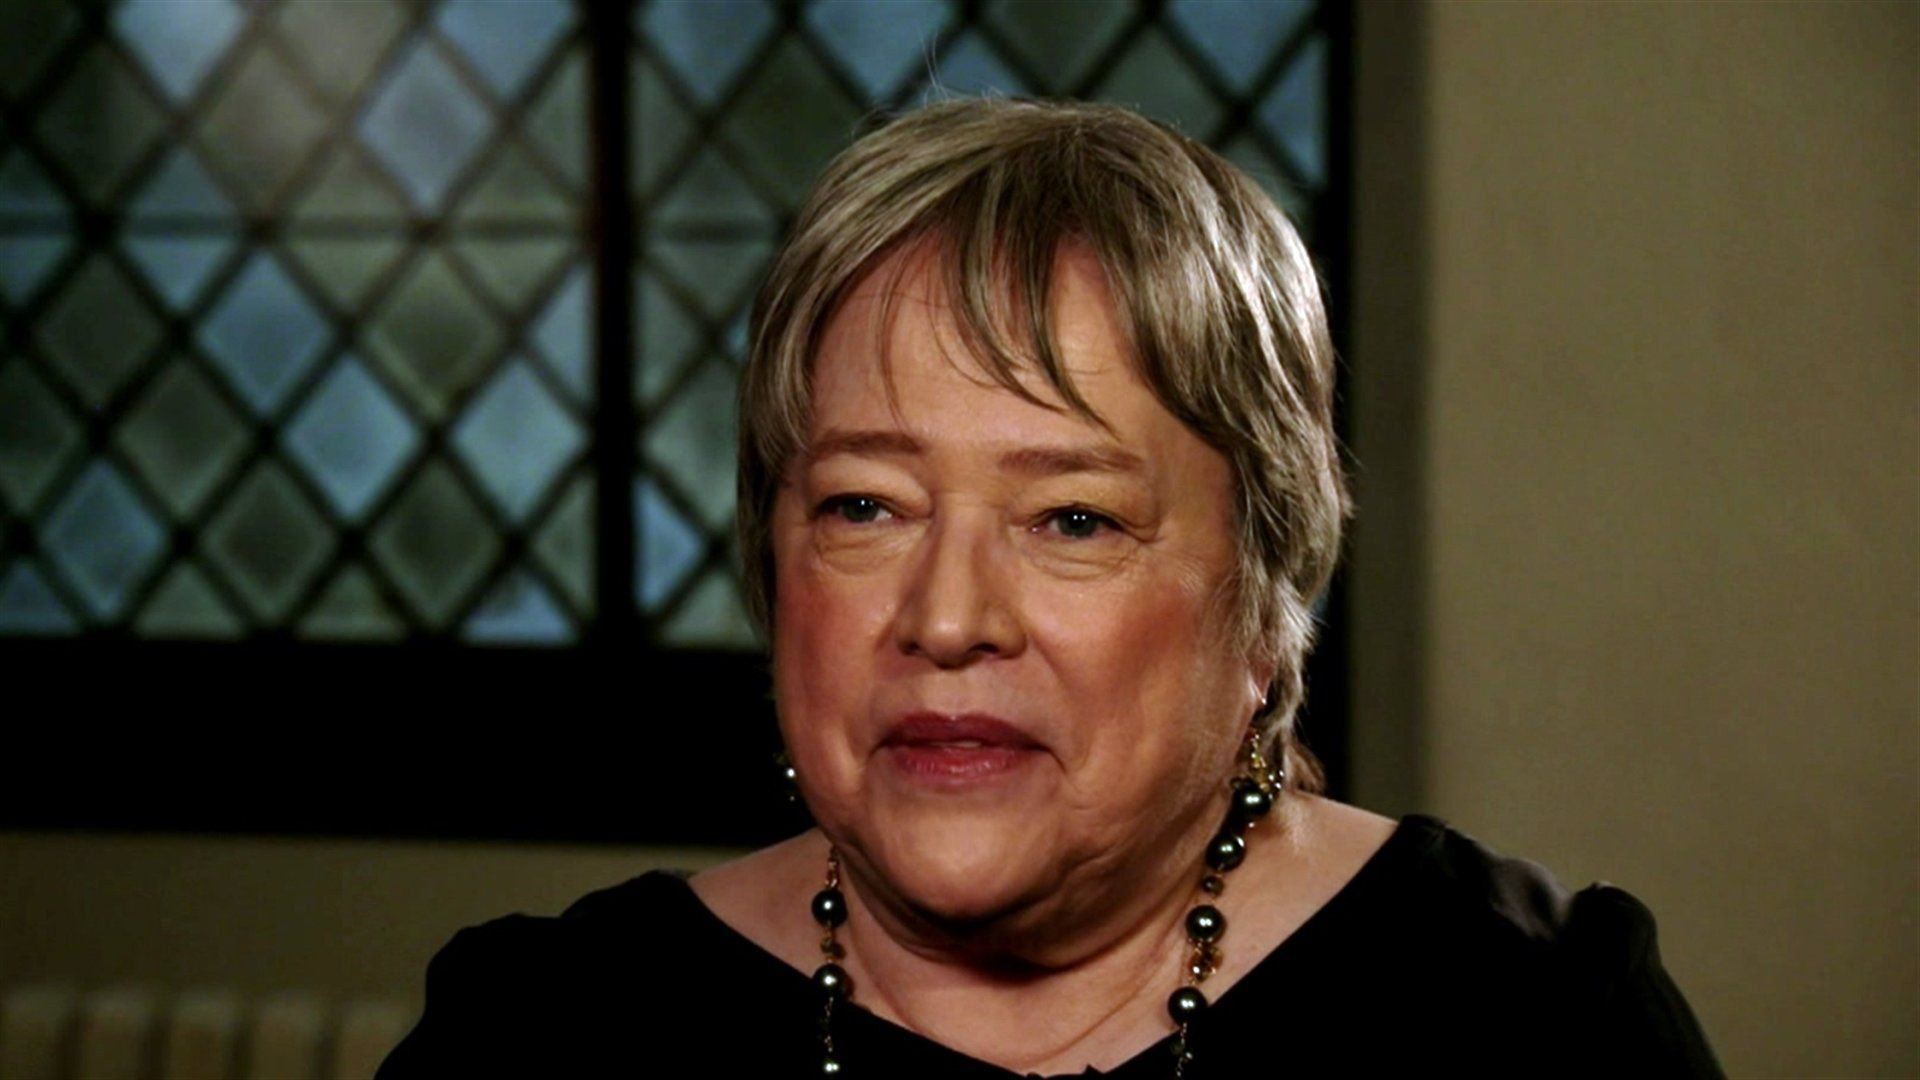 Kathy Bates Wallpapers...